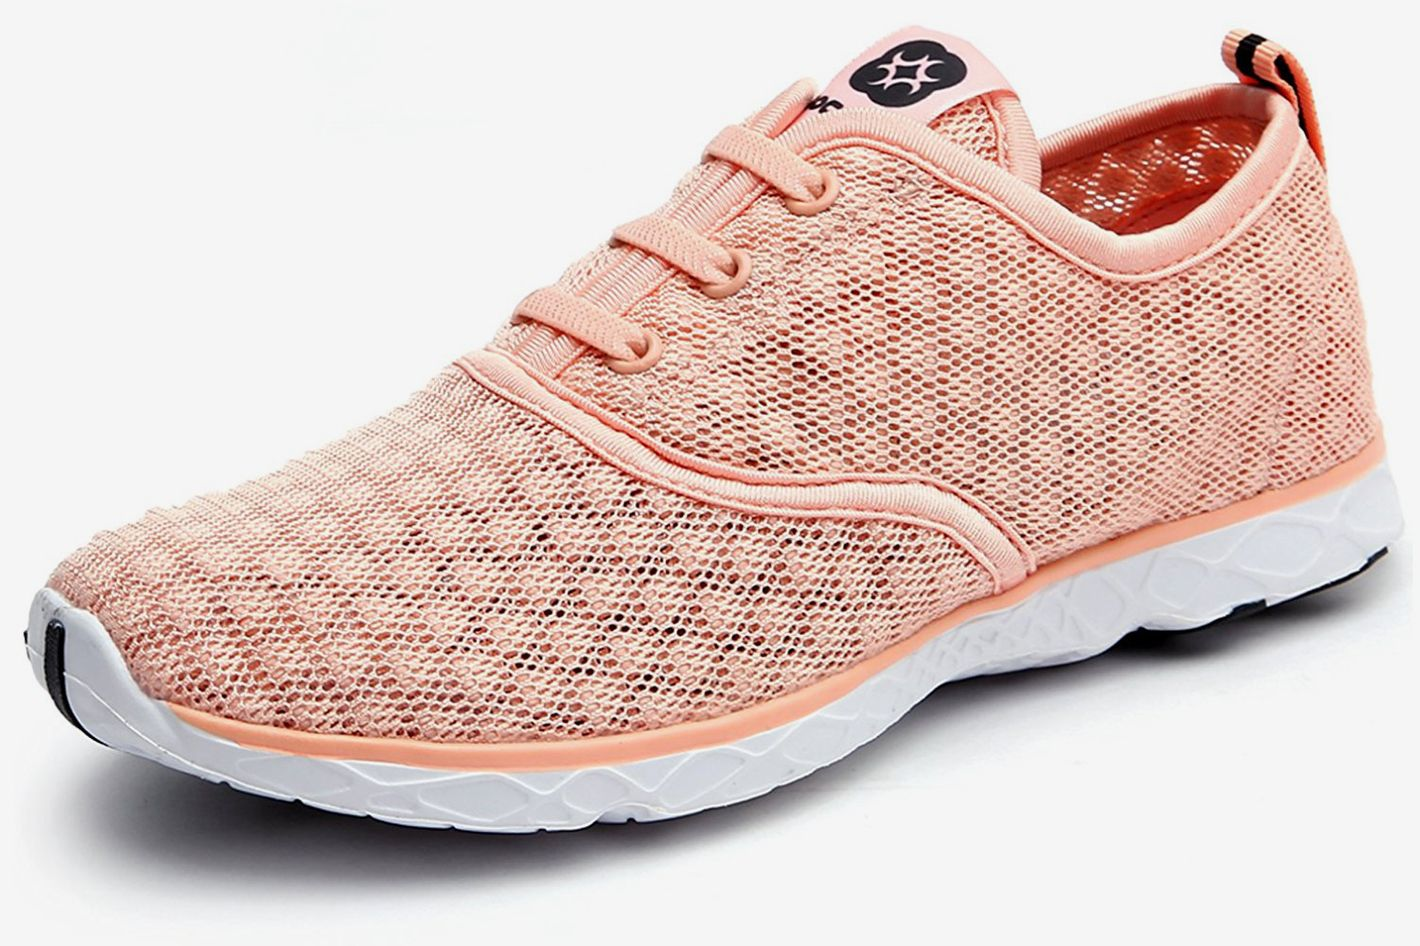 Best Women S Shoes For Comfort And Support